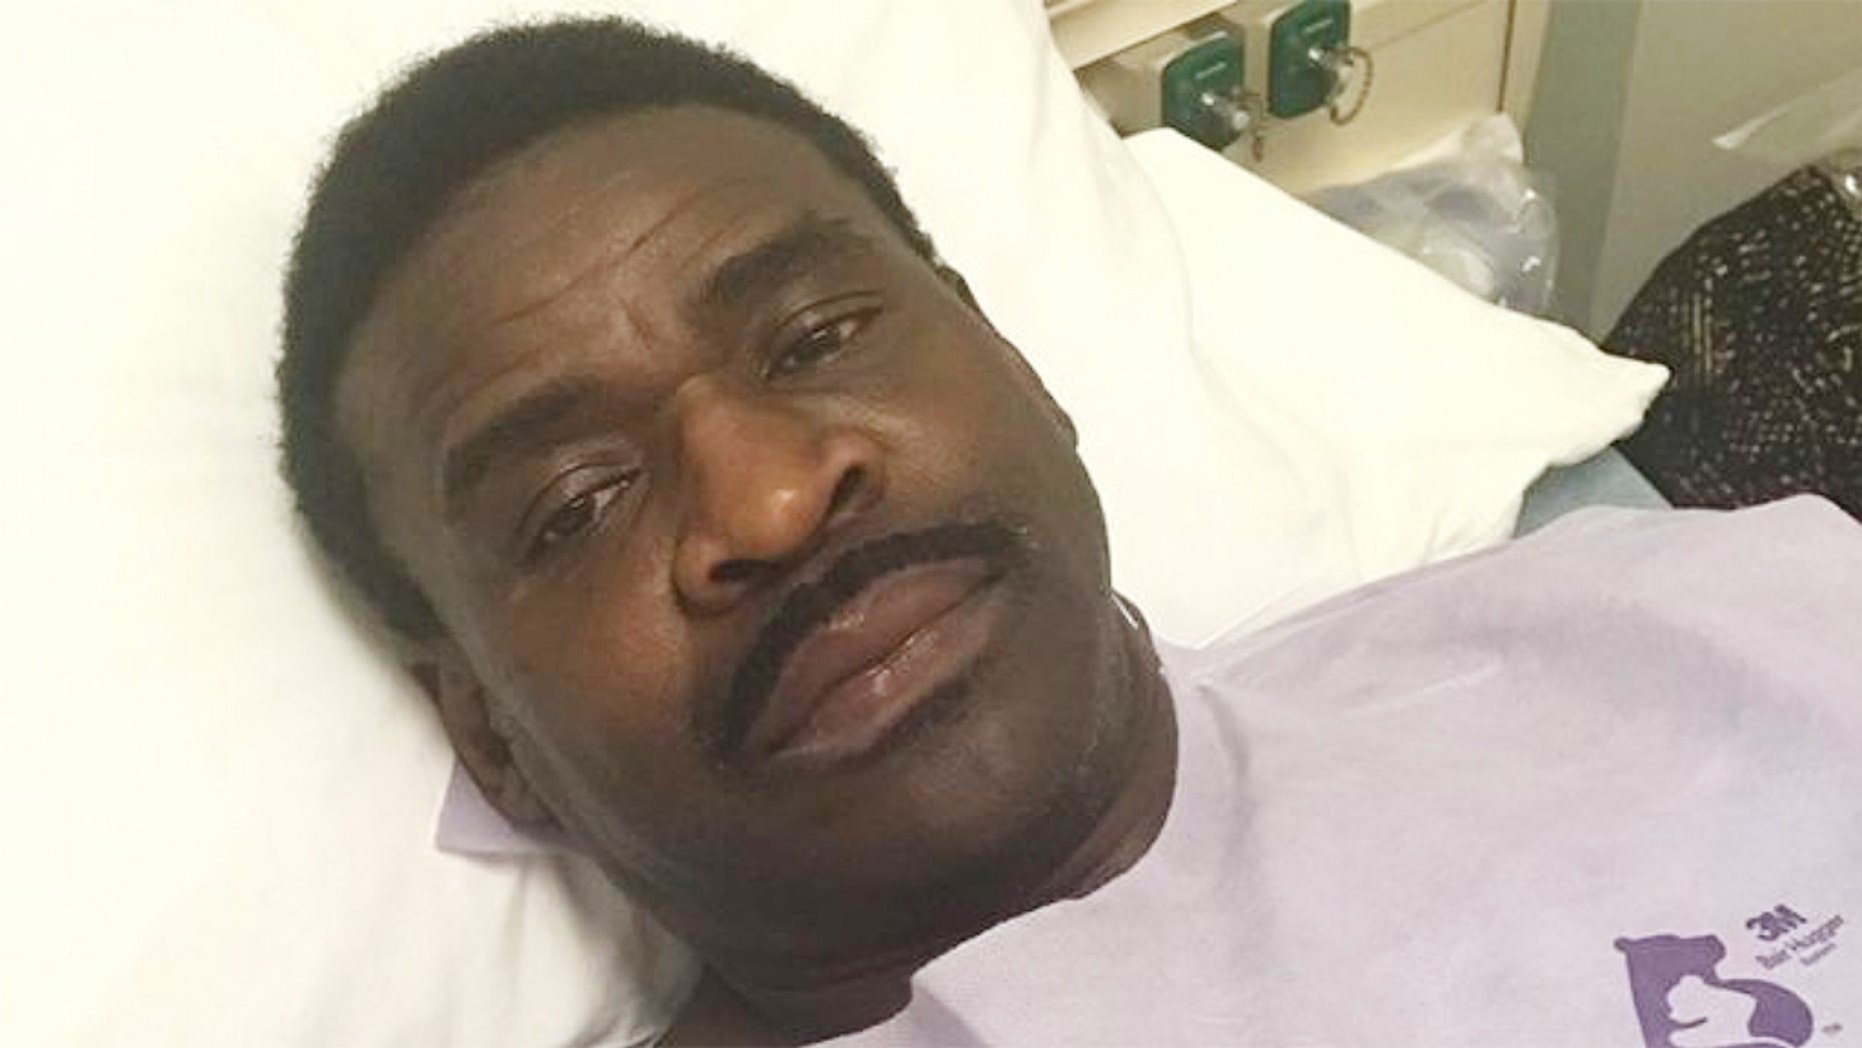 Michael Irvine revealed on Tuesday that he underwent tests for throat cancer. (Instagram/michaelirvin88)